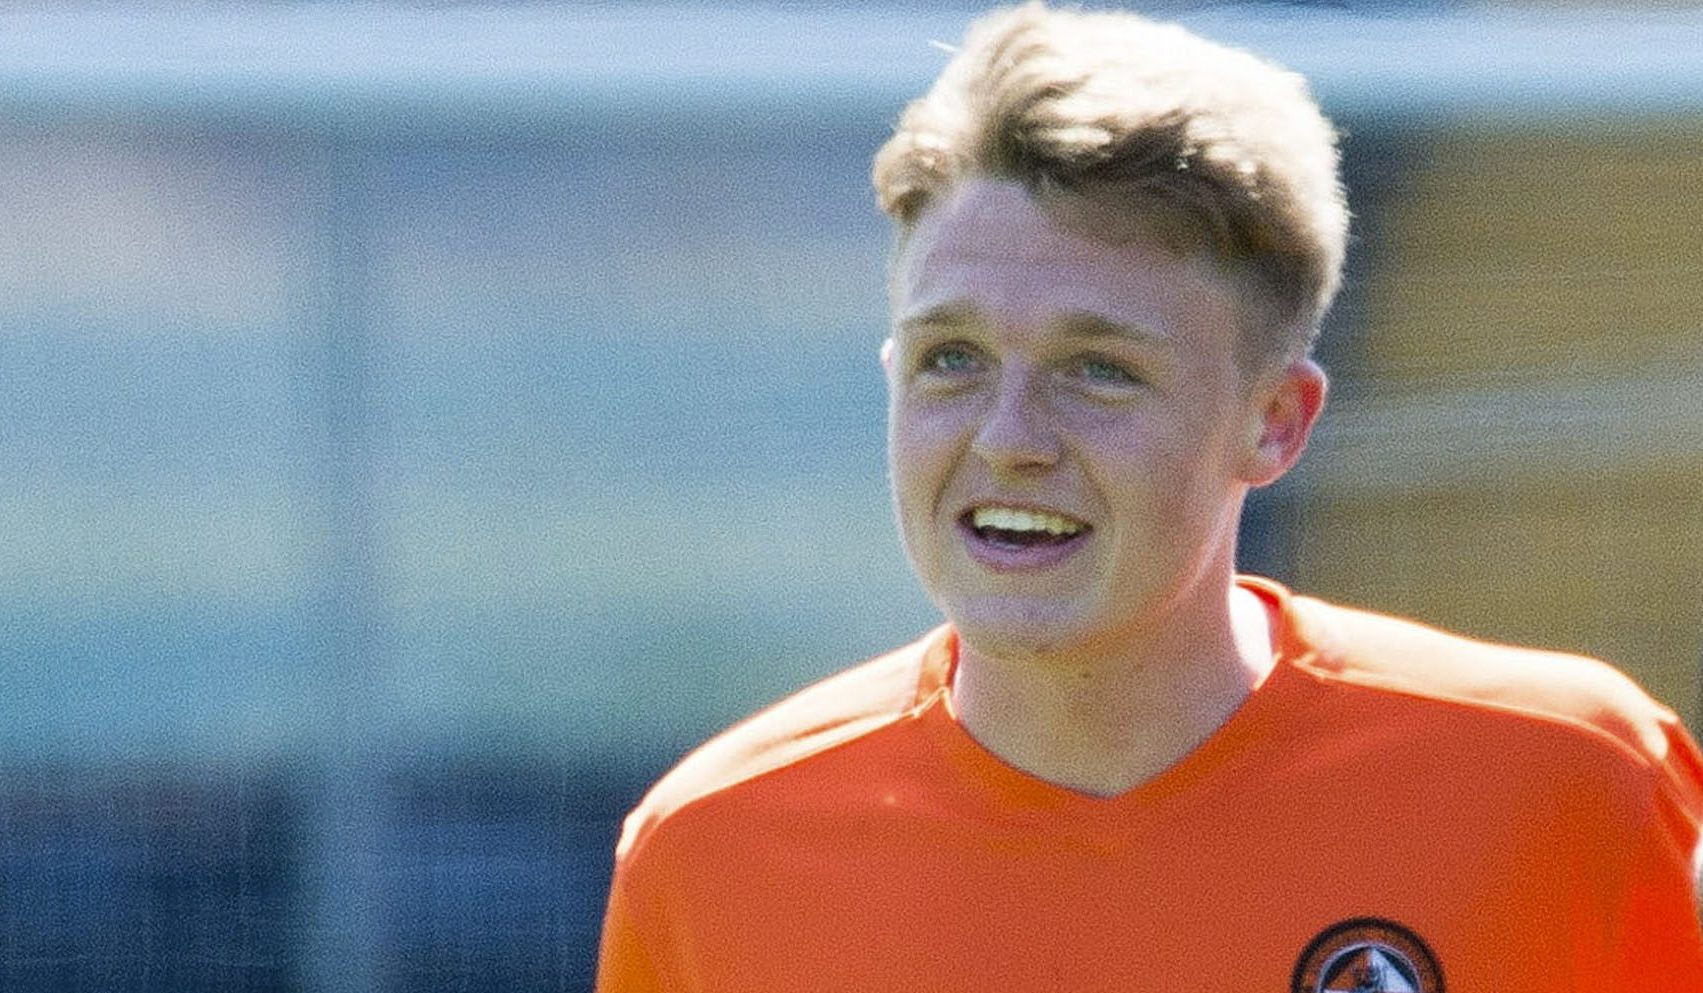 A glimpse of the future? Dundee United's Harry Souttar (left) and Cameron Ballantyne at Kilmarnock.